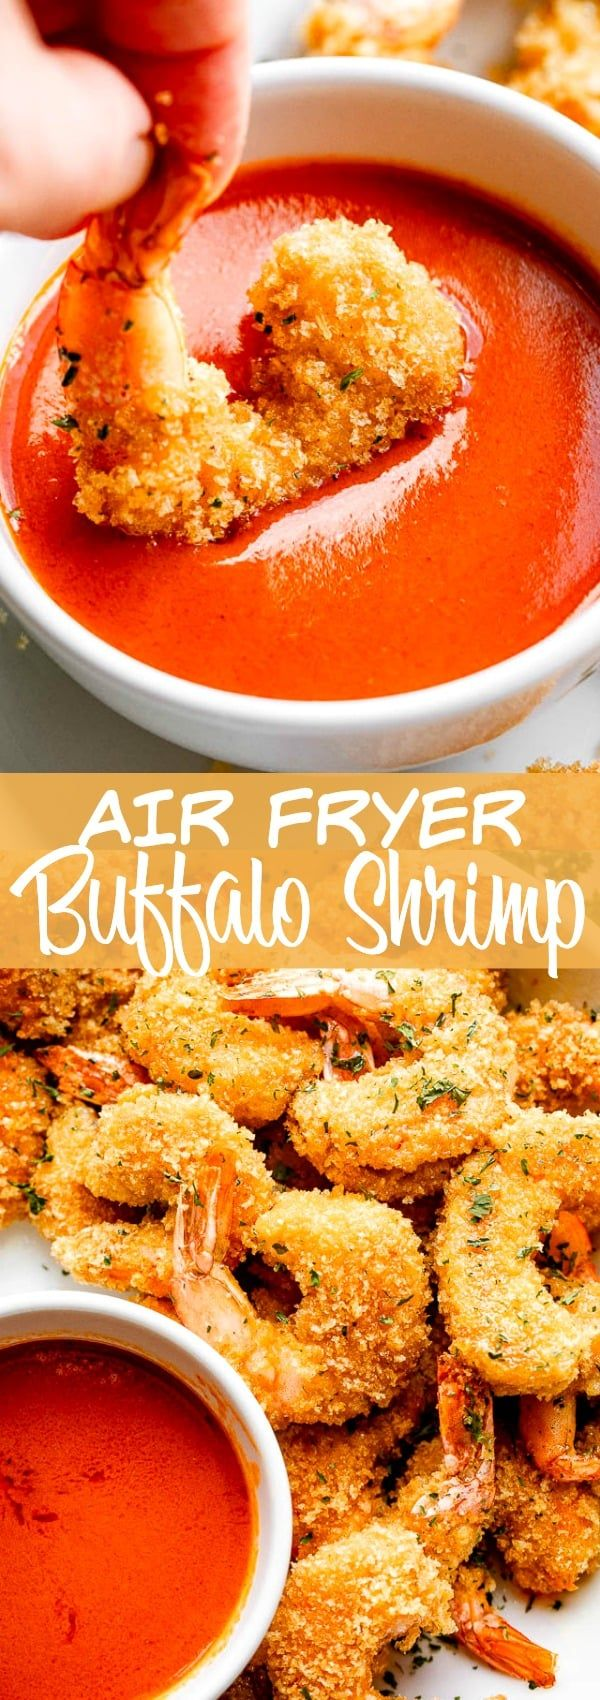 Crispy Air Fryer Buffalo Shrimp - Perfect Fried Shrimp!